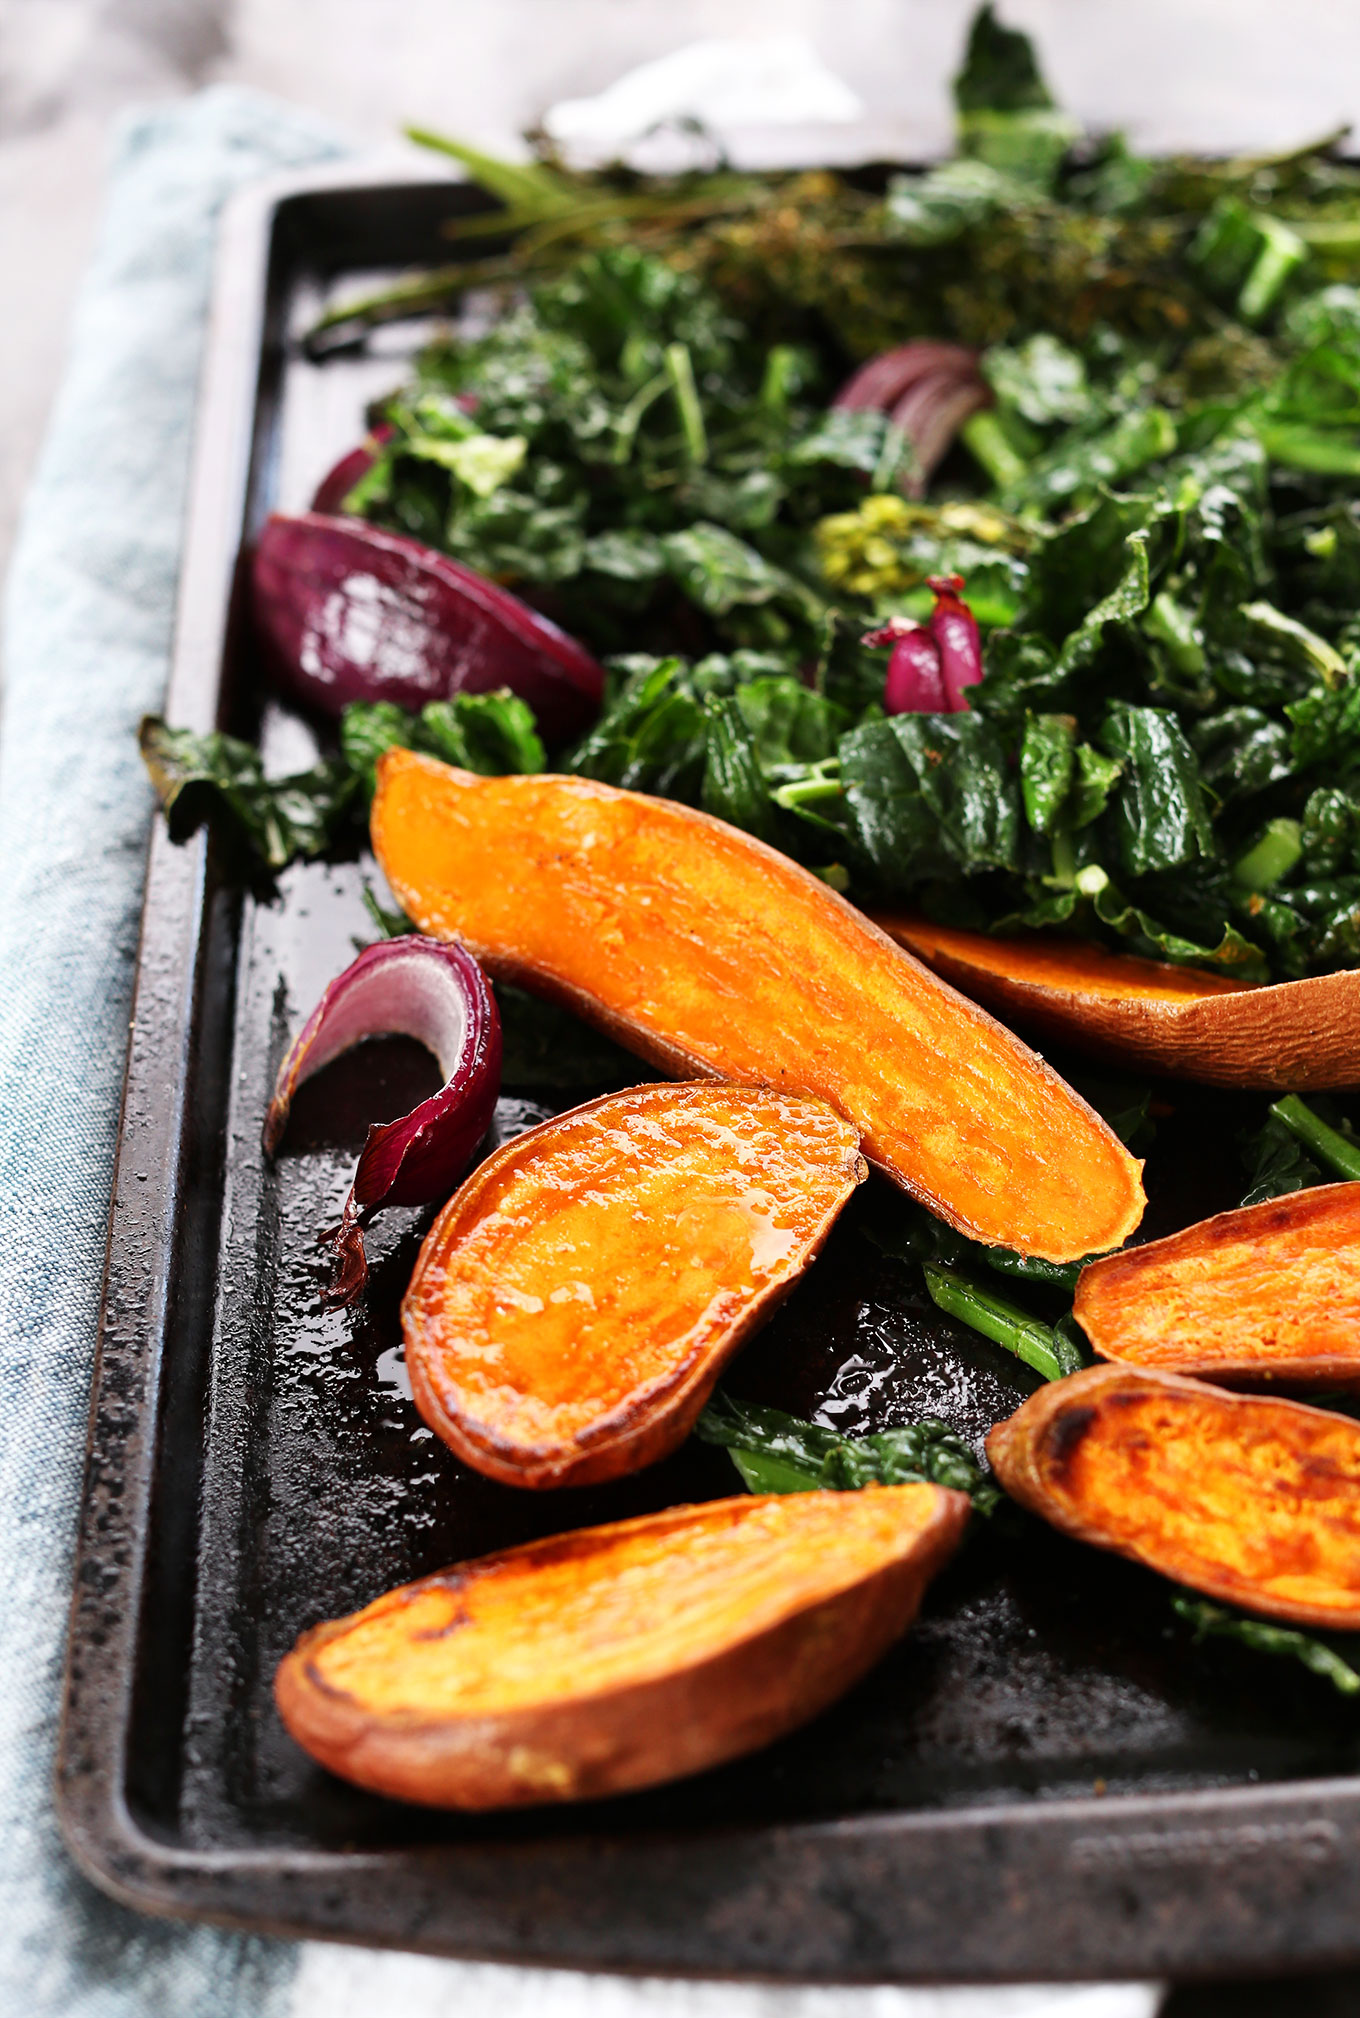 Baking sheet with sweet potatoes and greens for making vegan Buddha Bowls